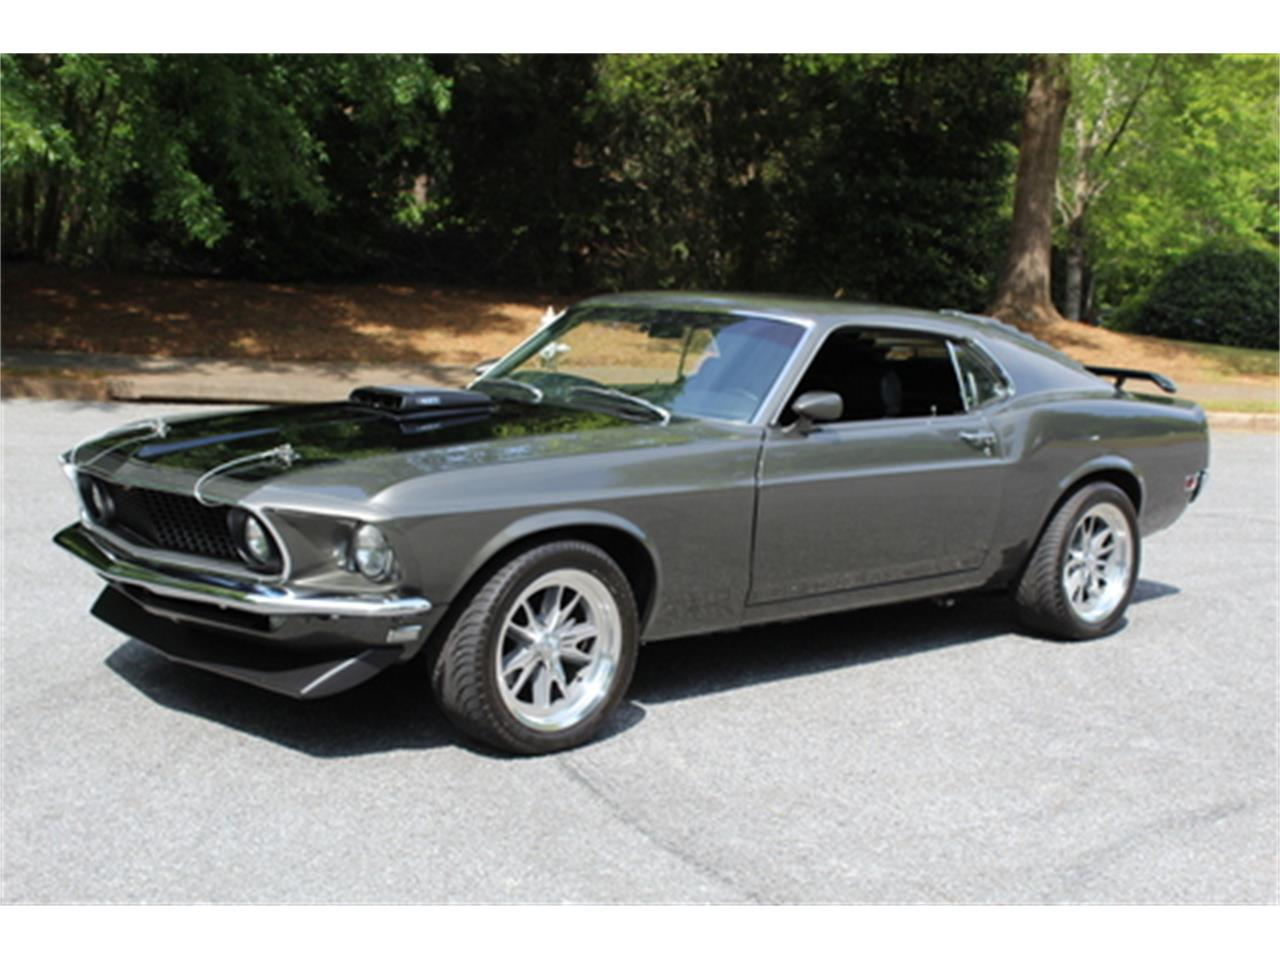 1970 Ford Mustang Mach 1 (CC-1208415) for sale in Roswell, Georgia